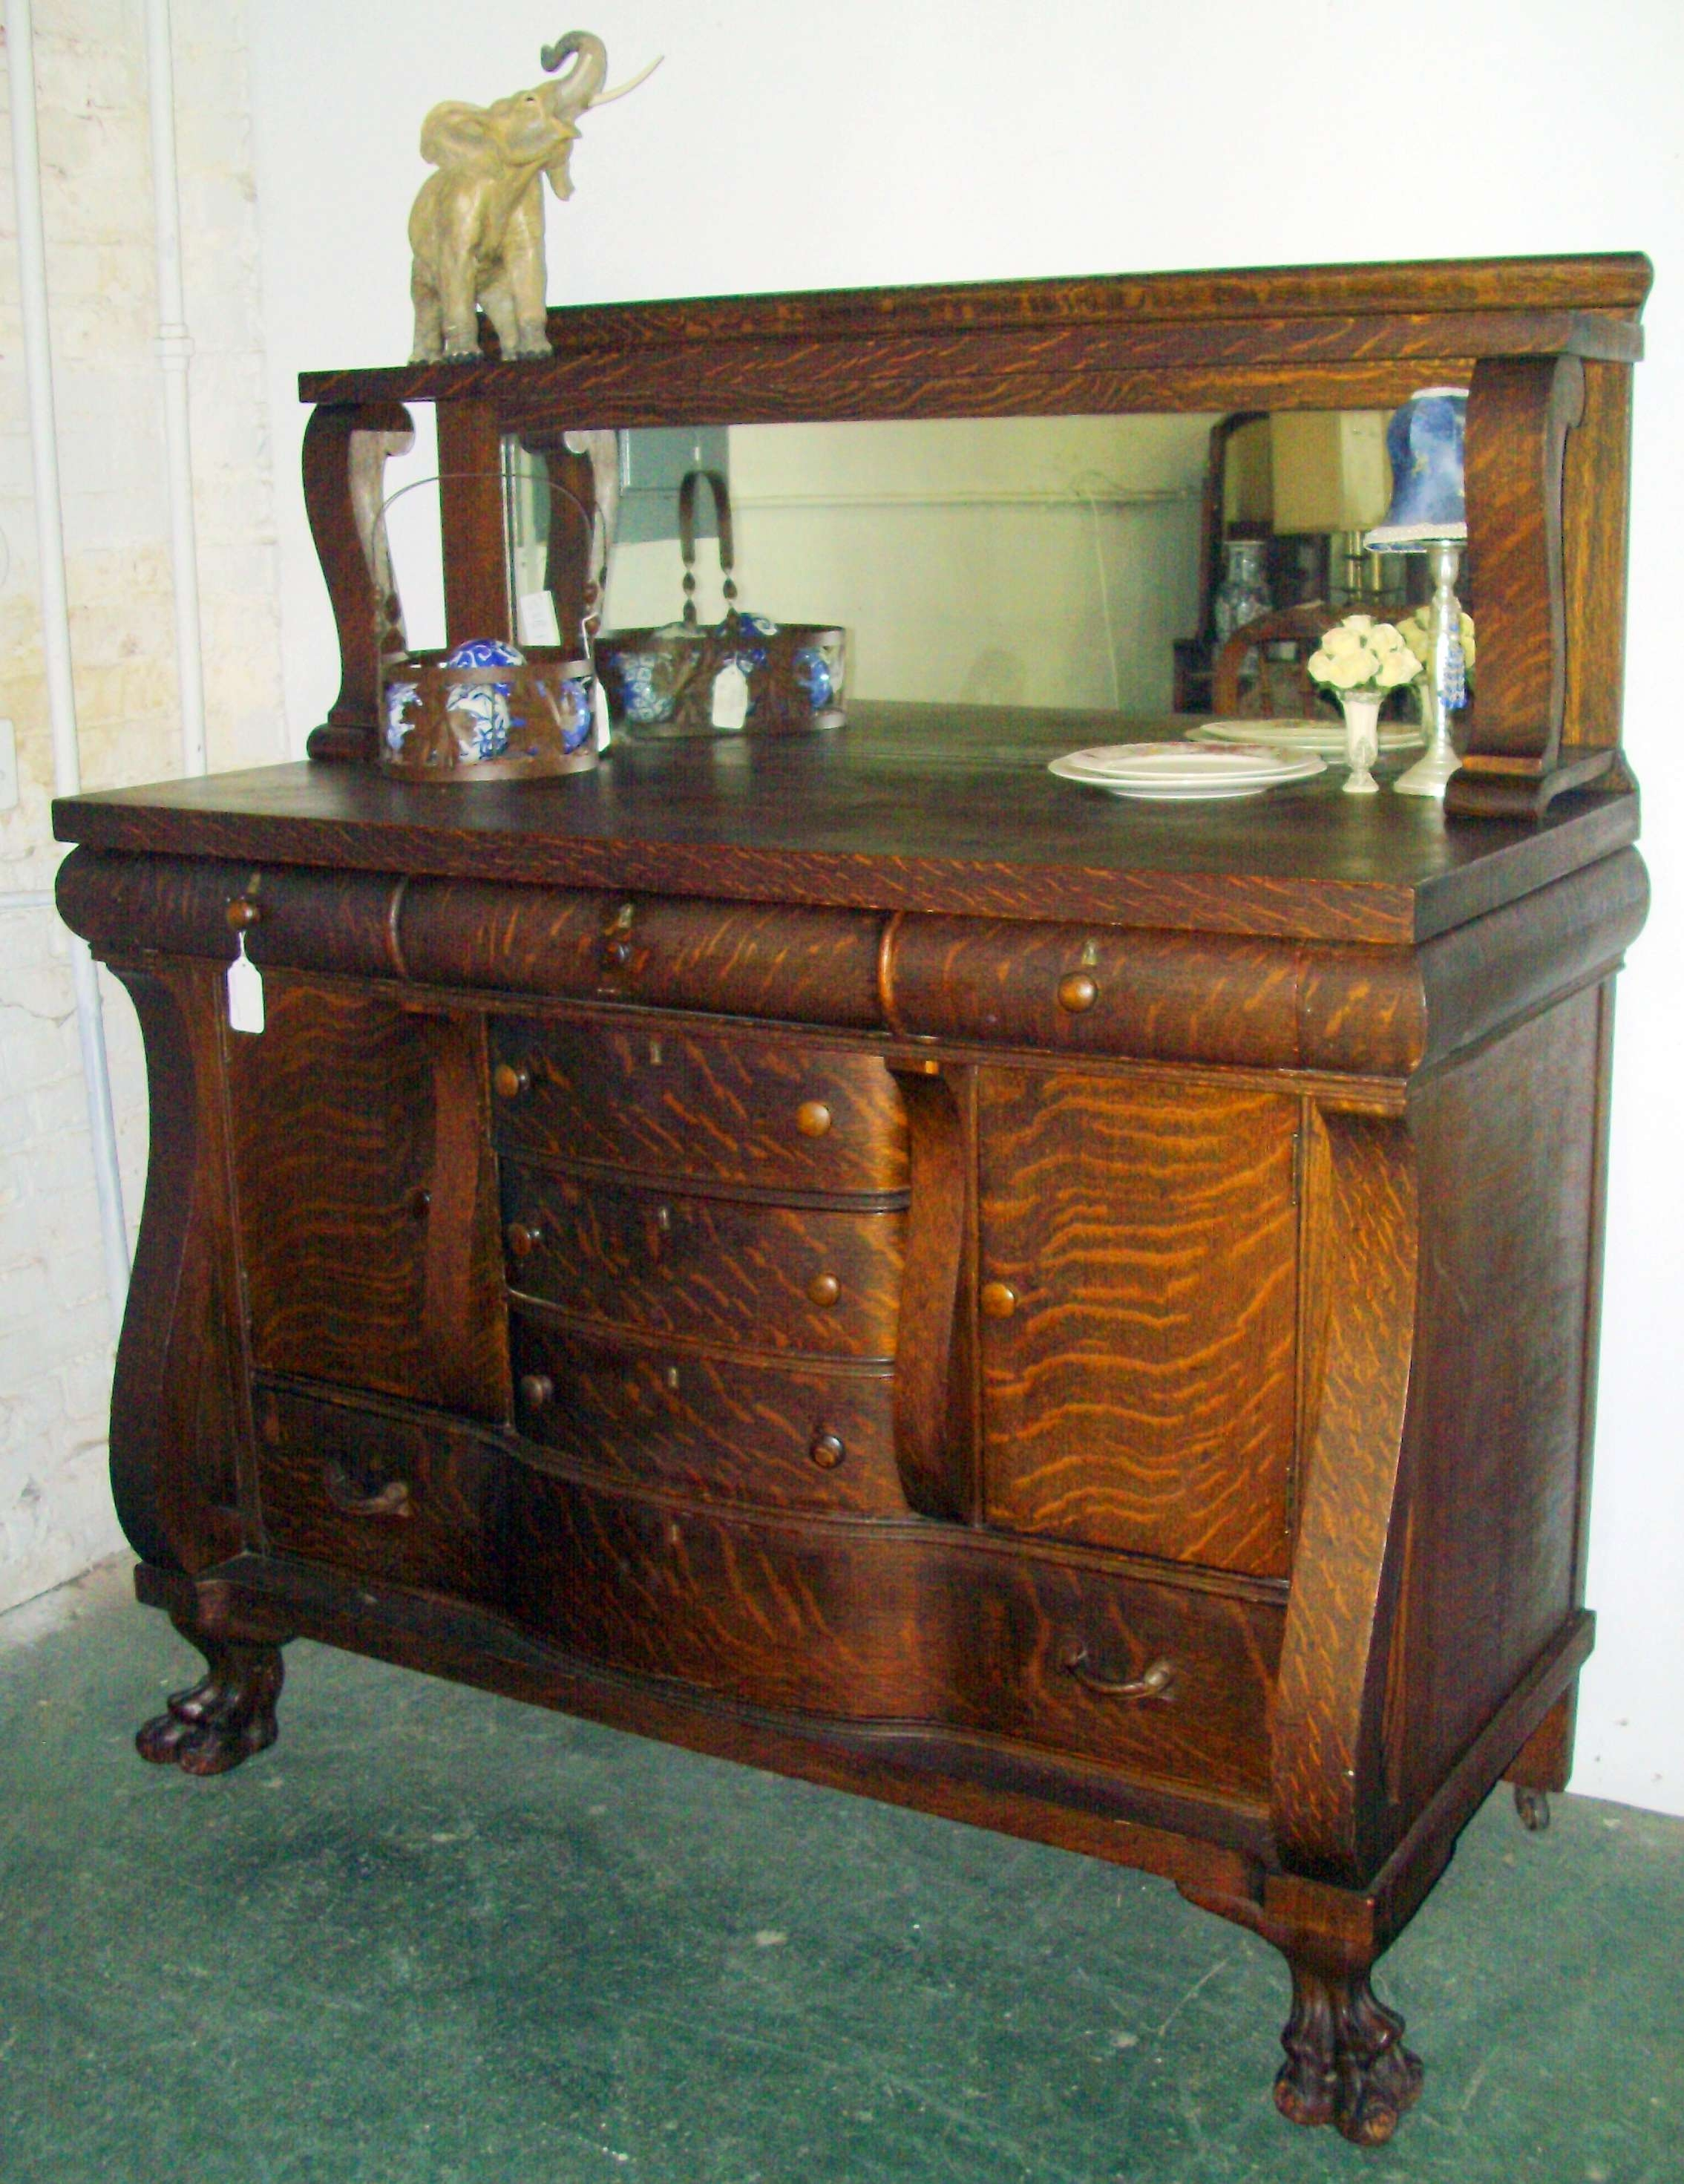 New Antique Sideboard With Mirror – Bjdgjy With Regard To Antique Sideboards With Mirror (View 12 of 20)